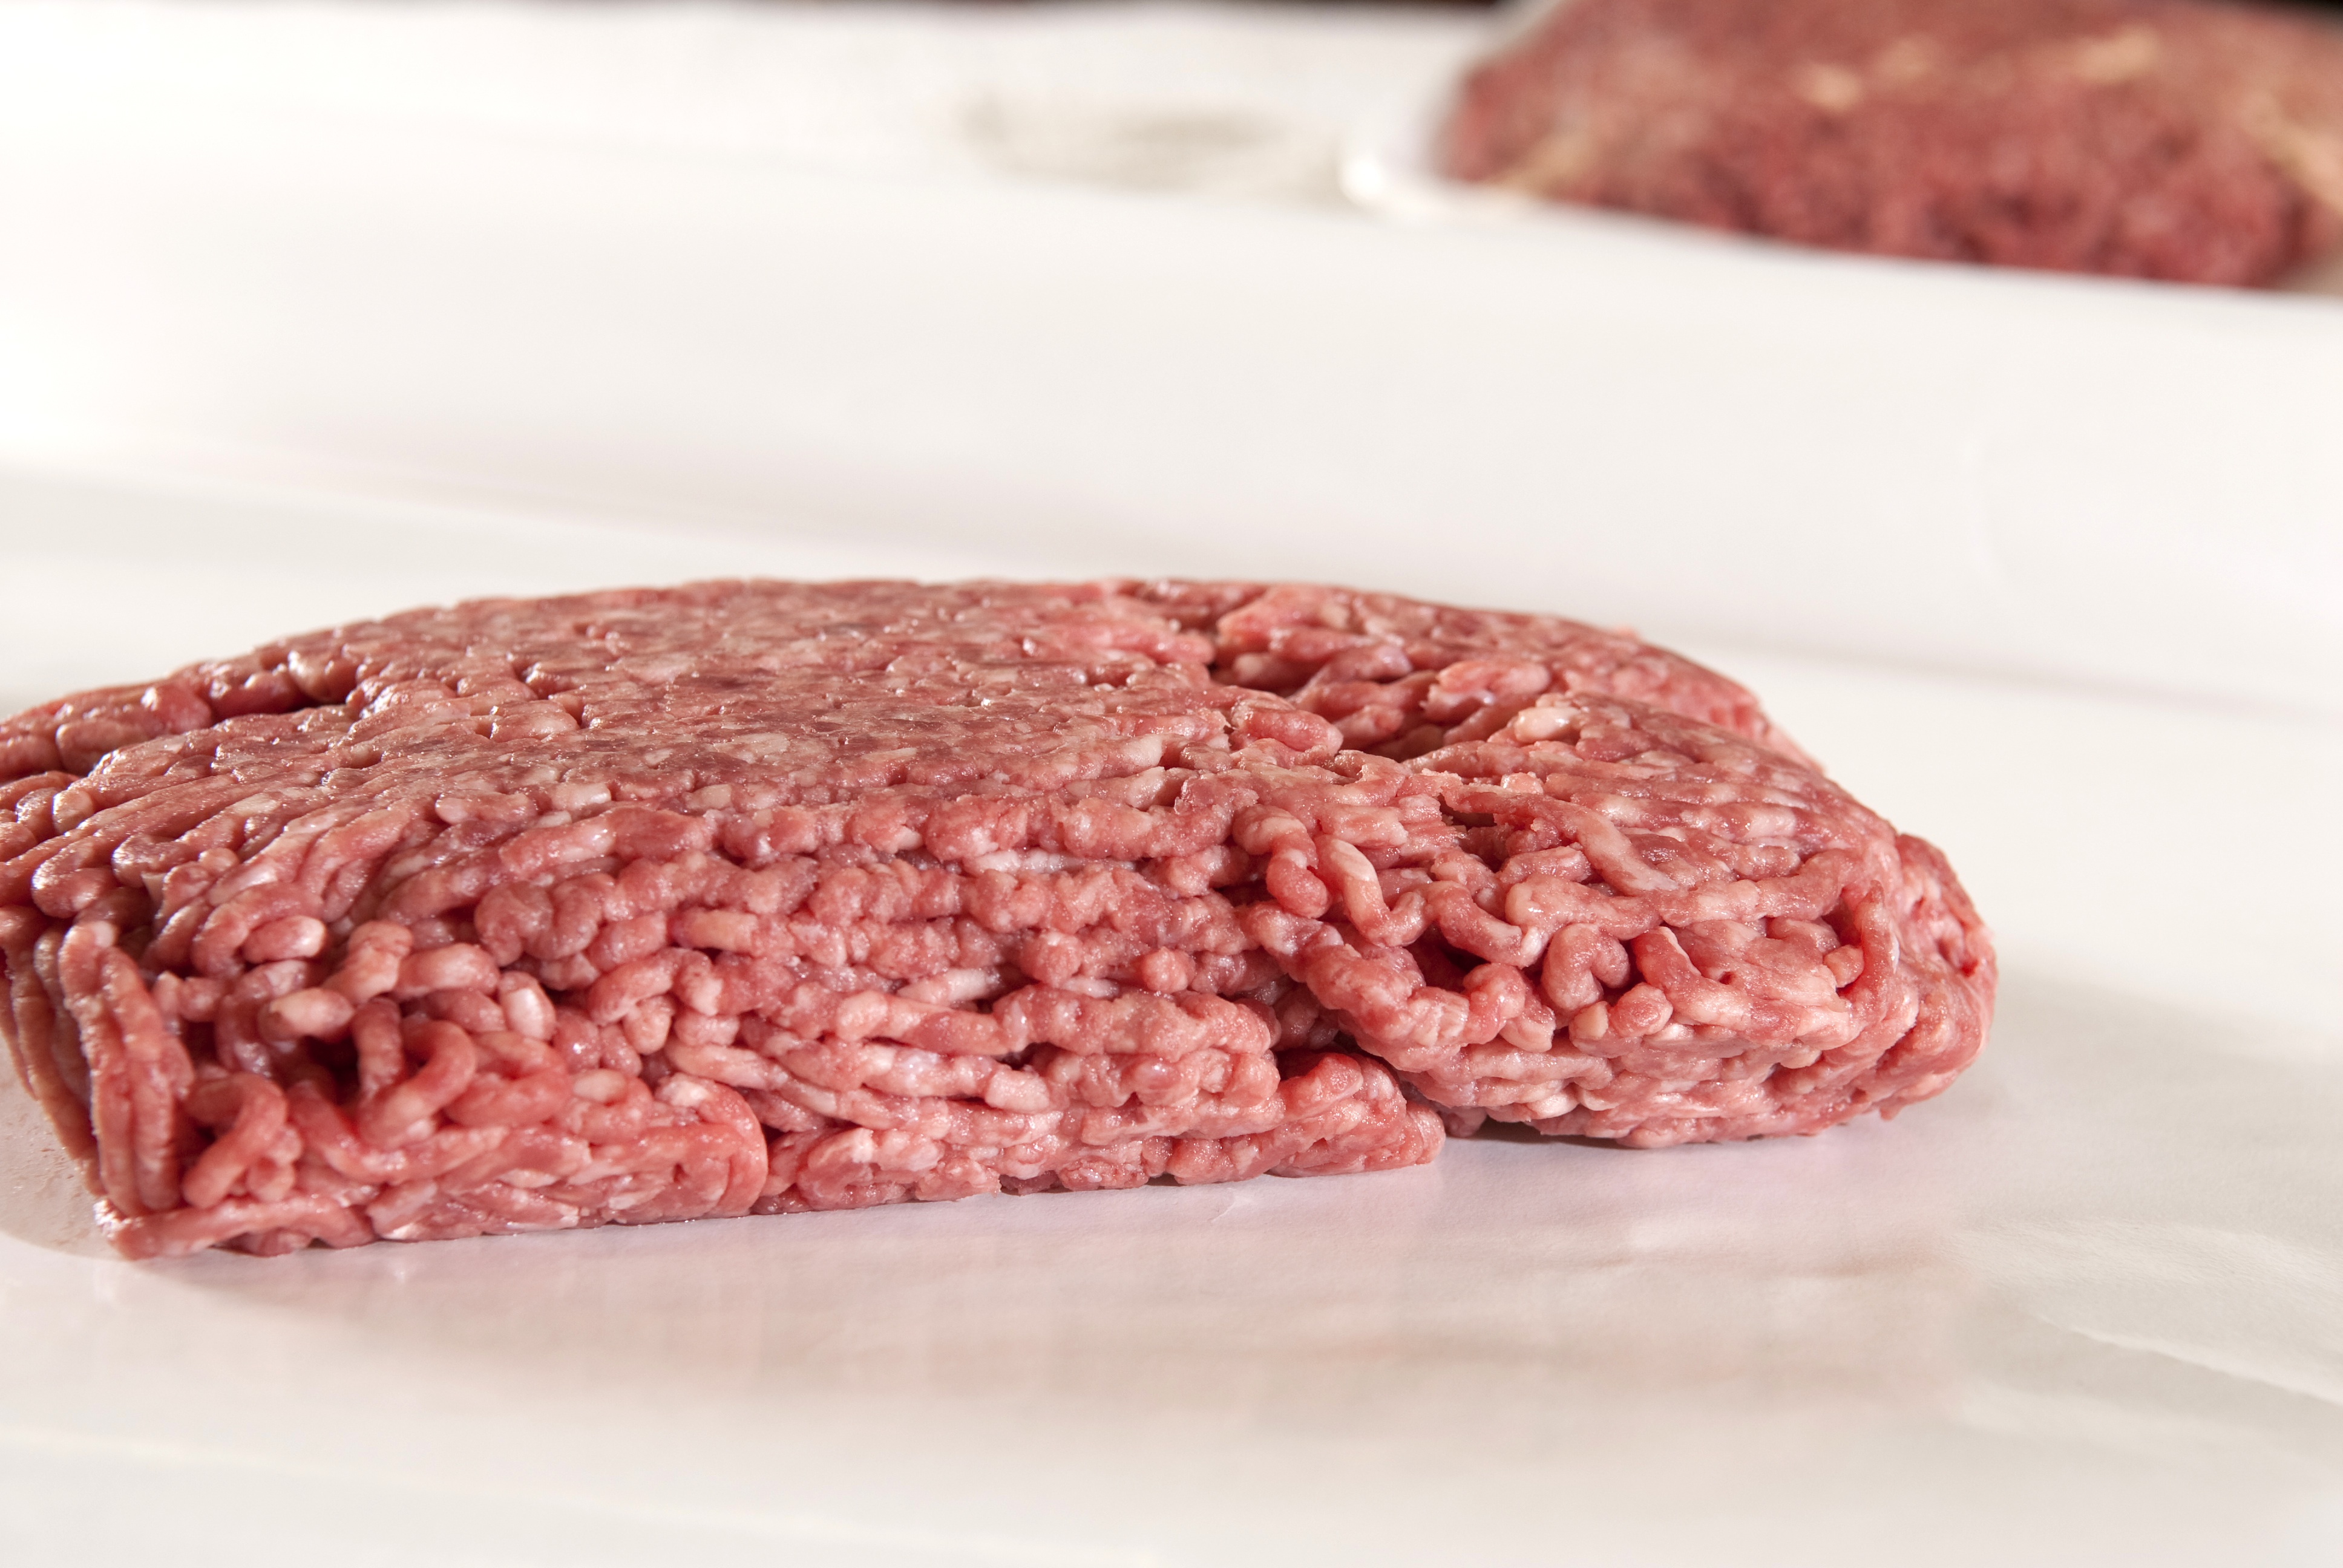 Ground Beef: Safe Handling and Cooking | Food Safety News